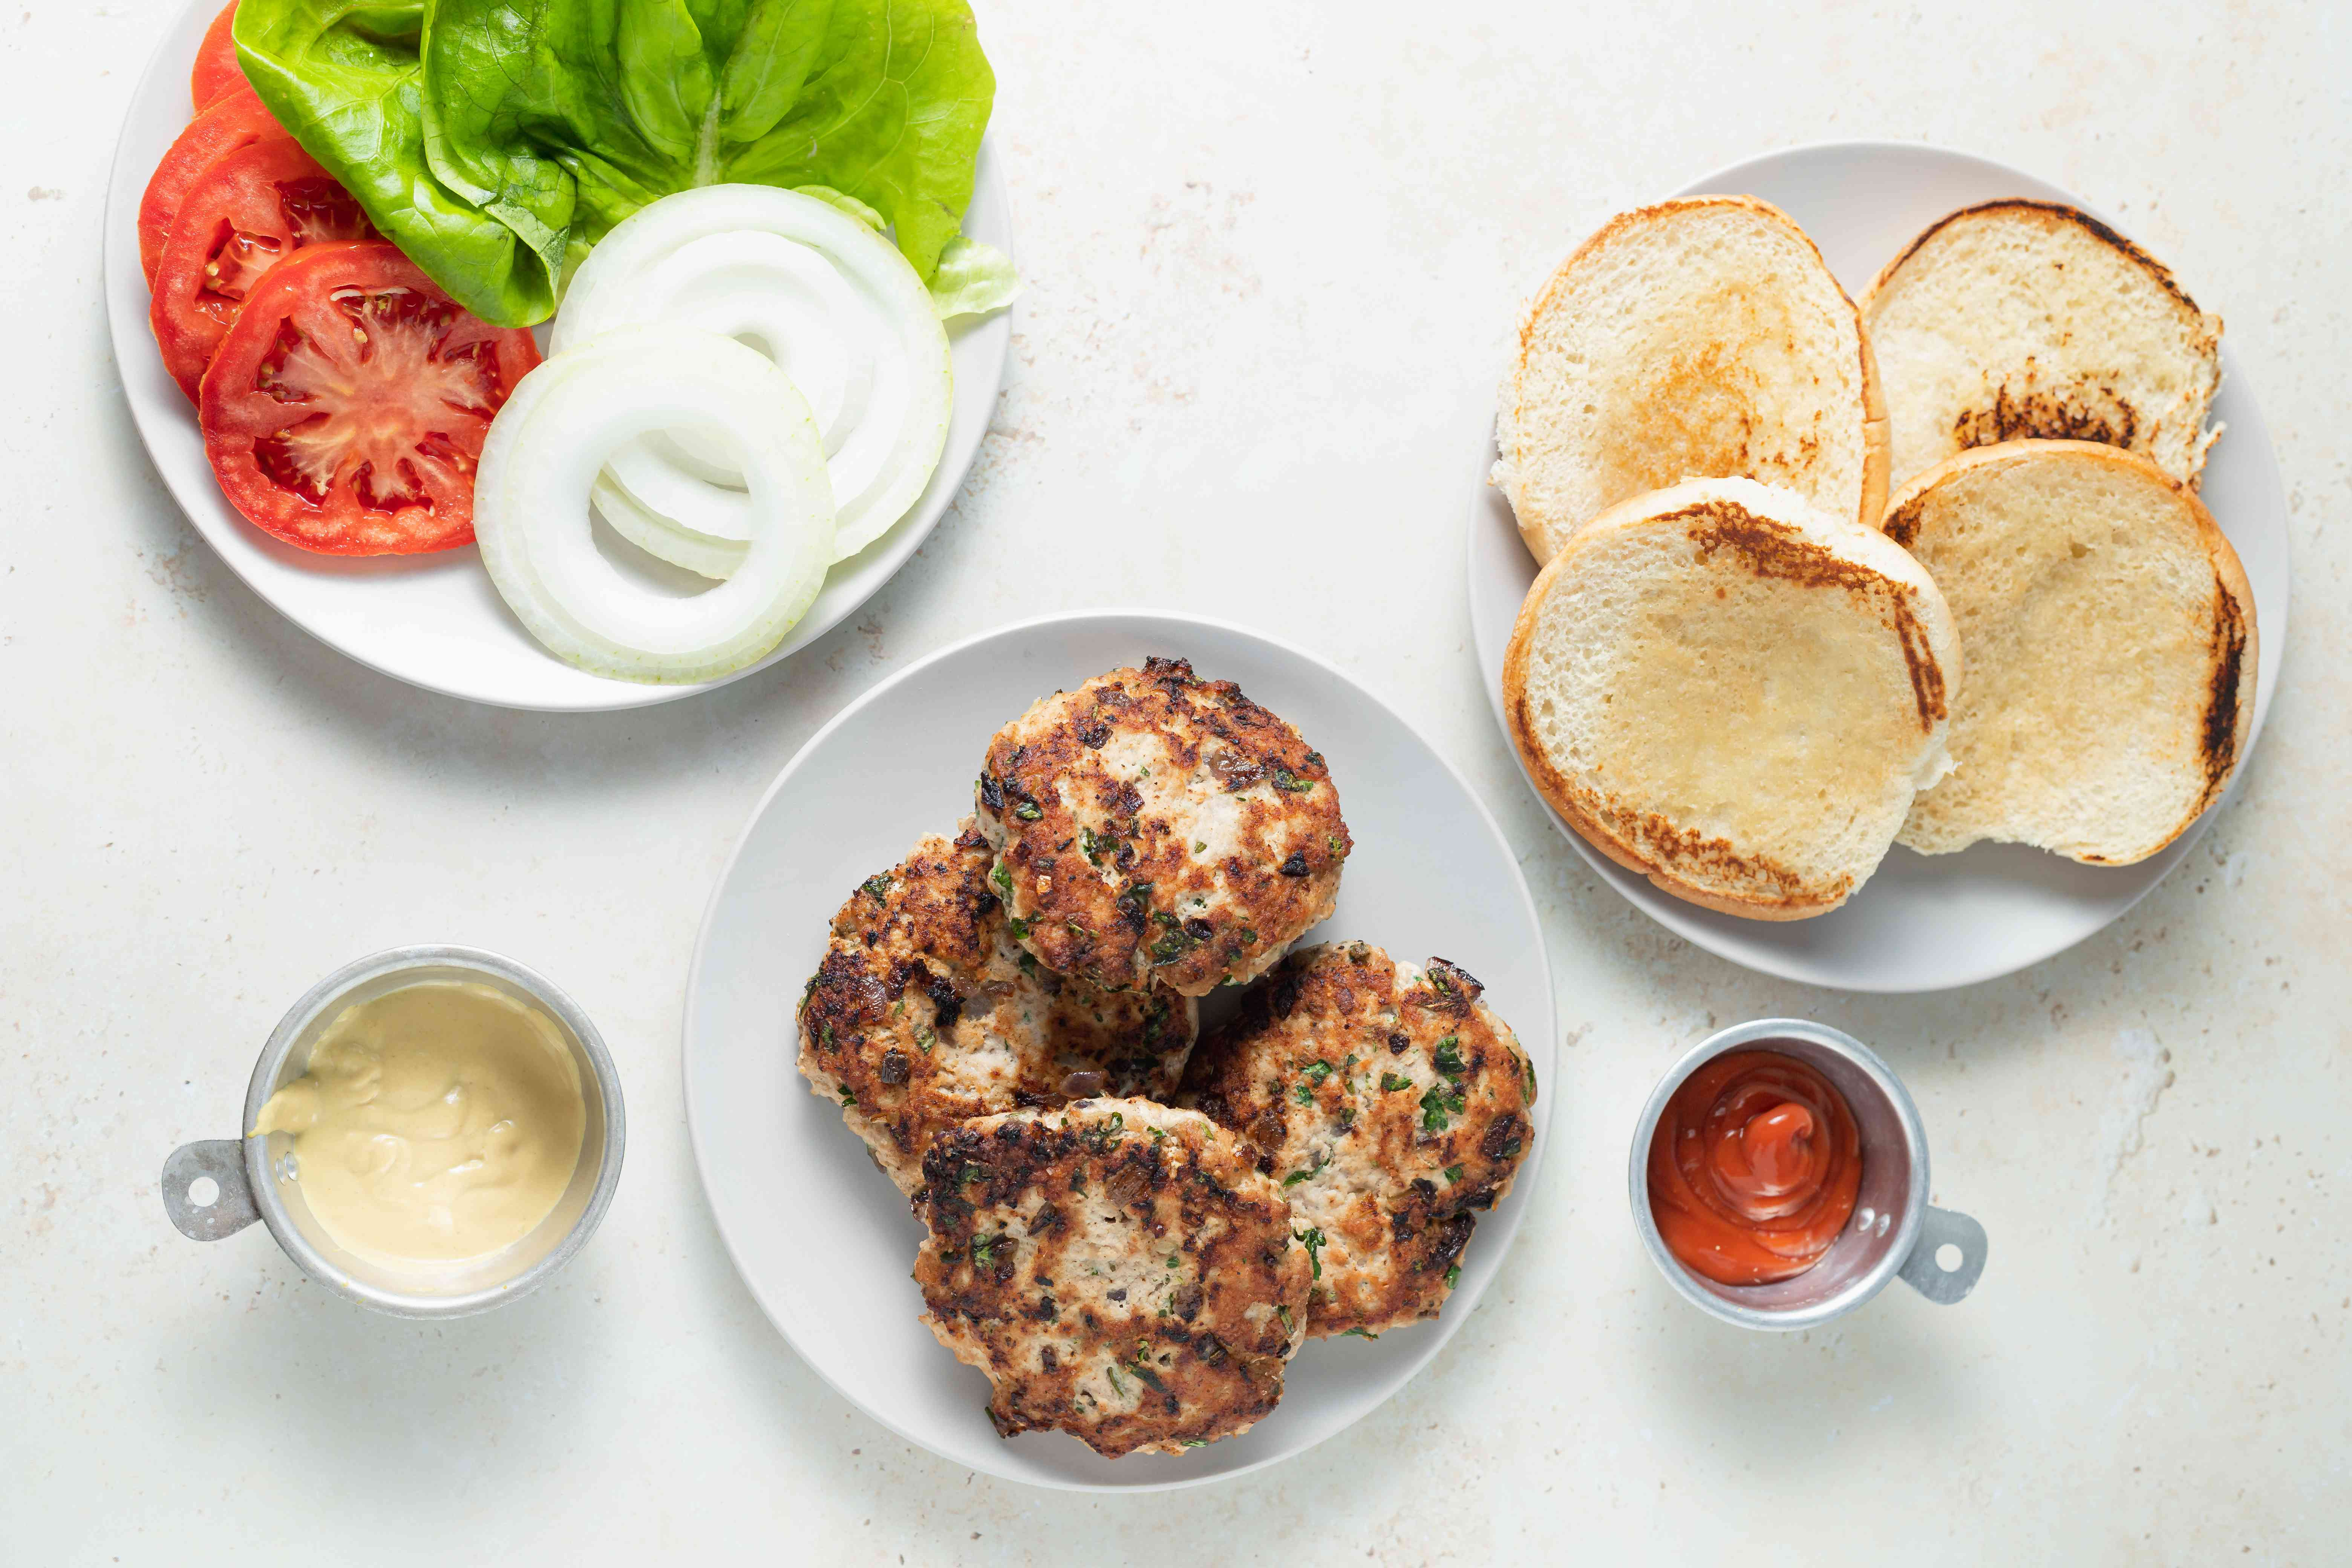 Plates with toasted buns, turkey burgers, and toppings for the best turkey burger recipe.